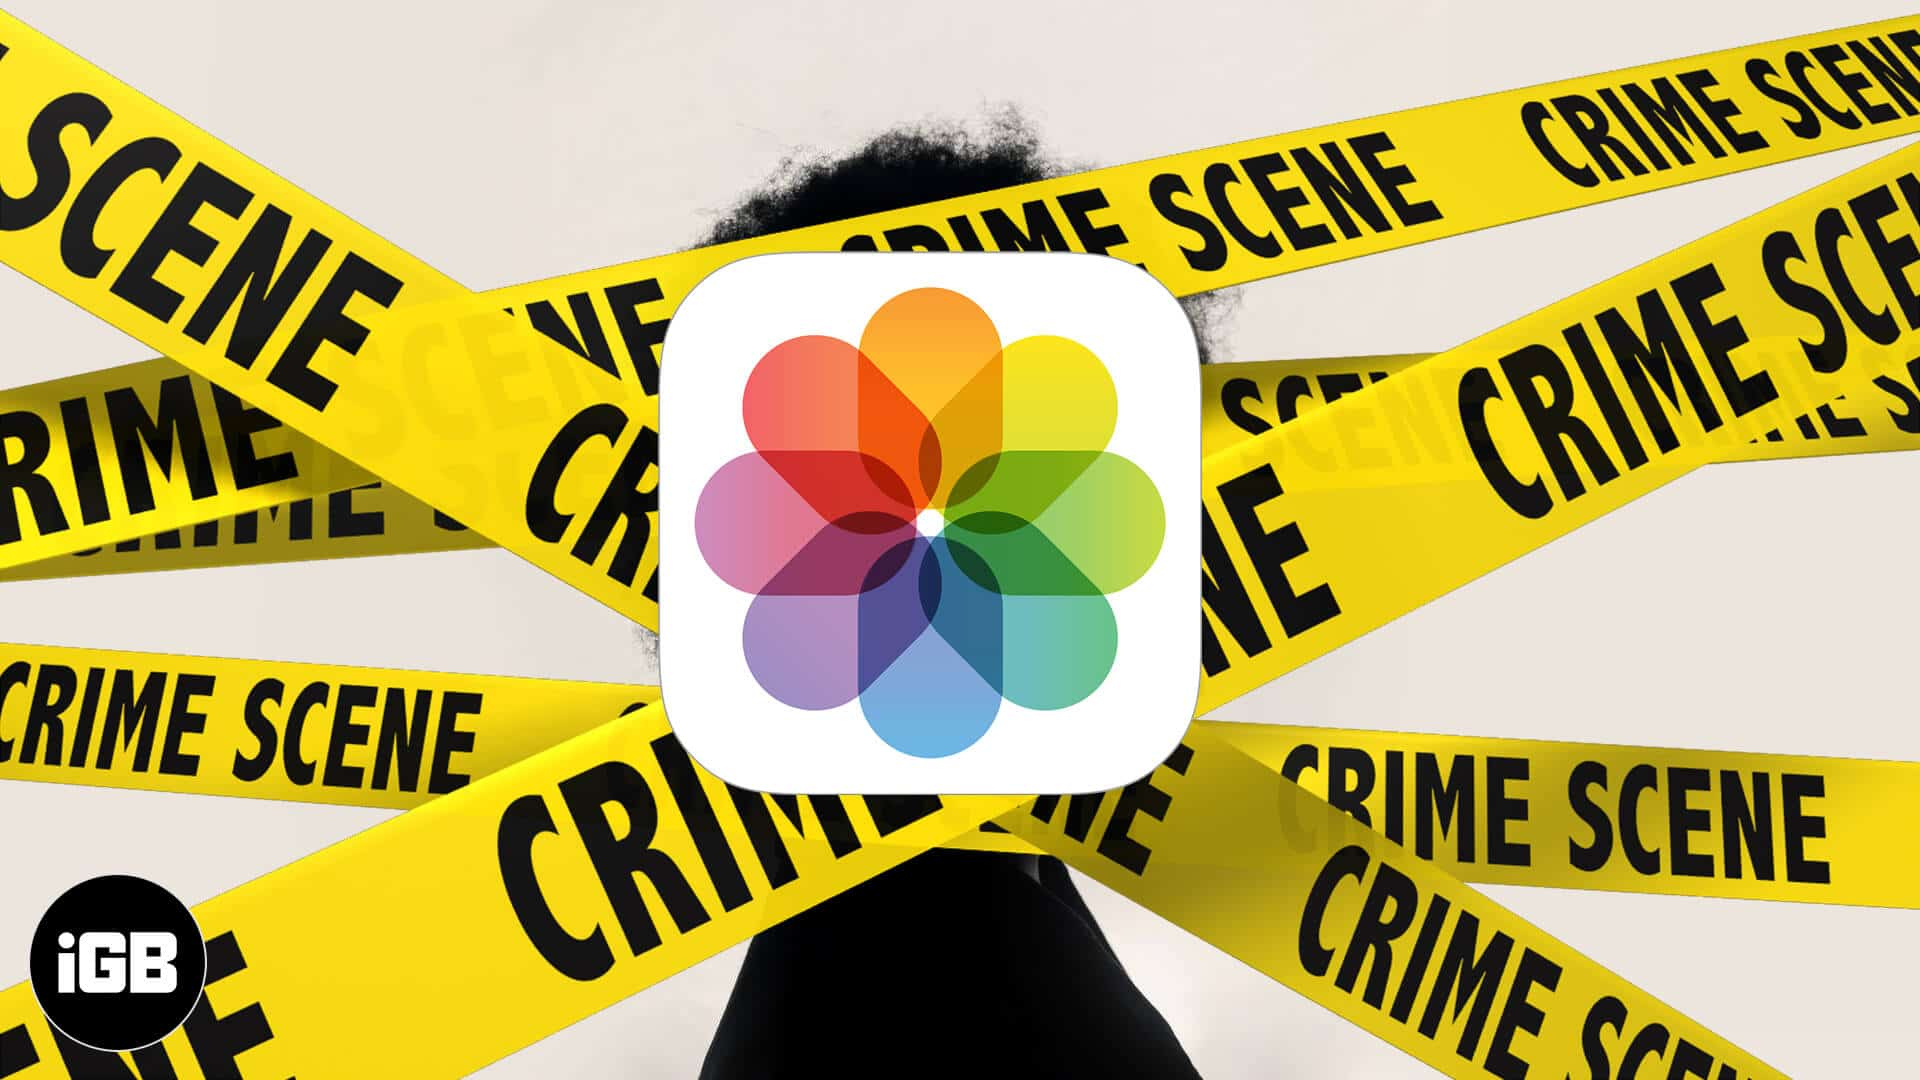 Protect iPhone photos My Photo Stream security tips